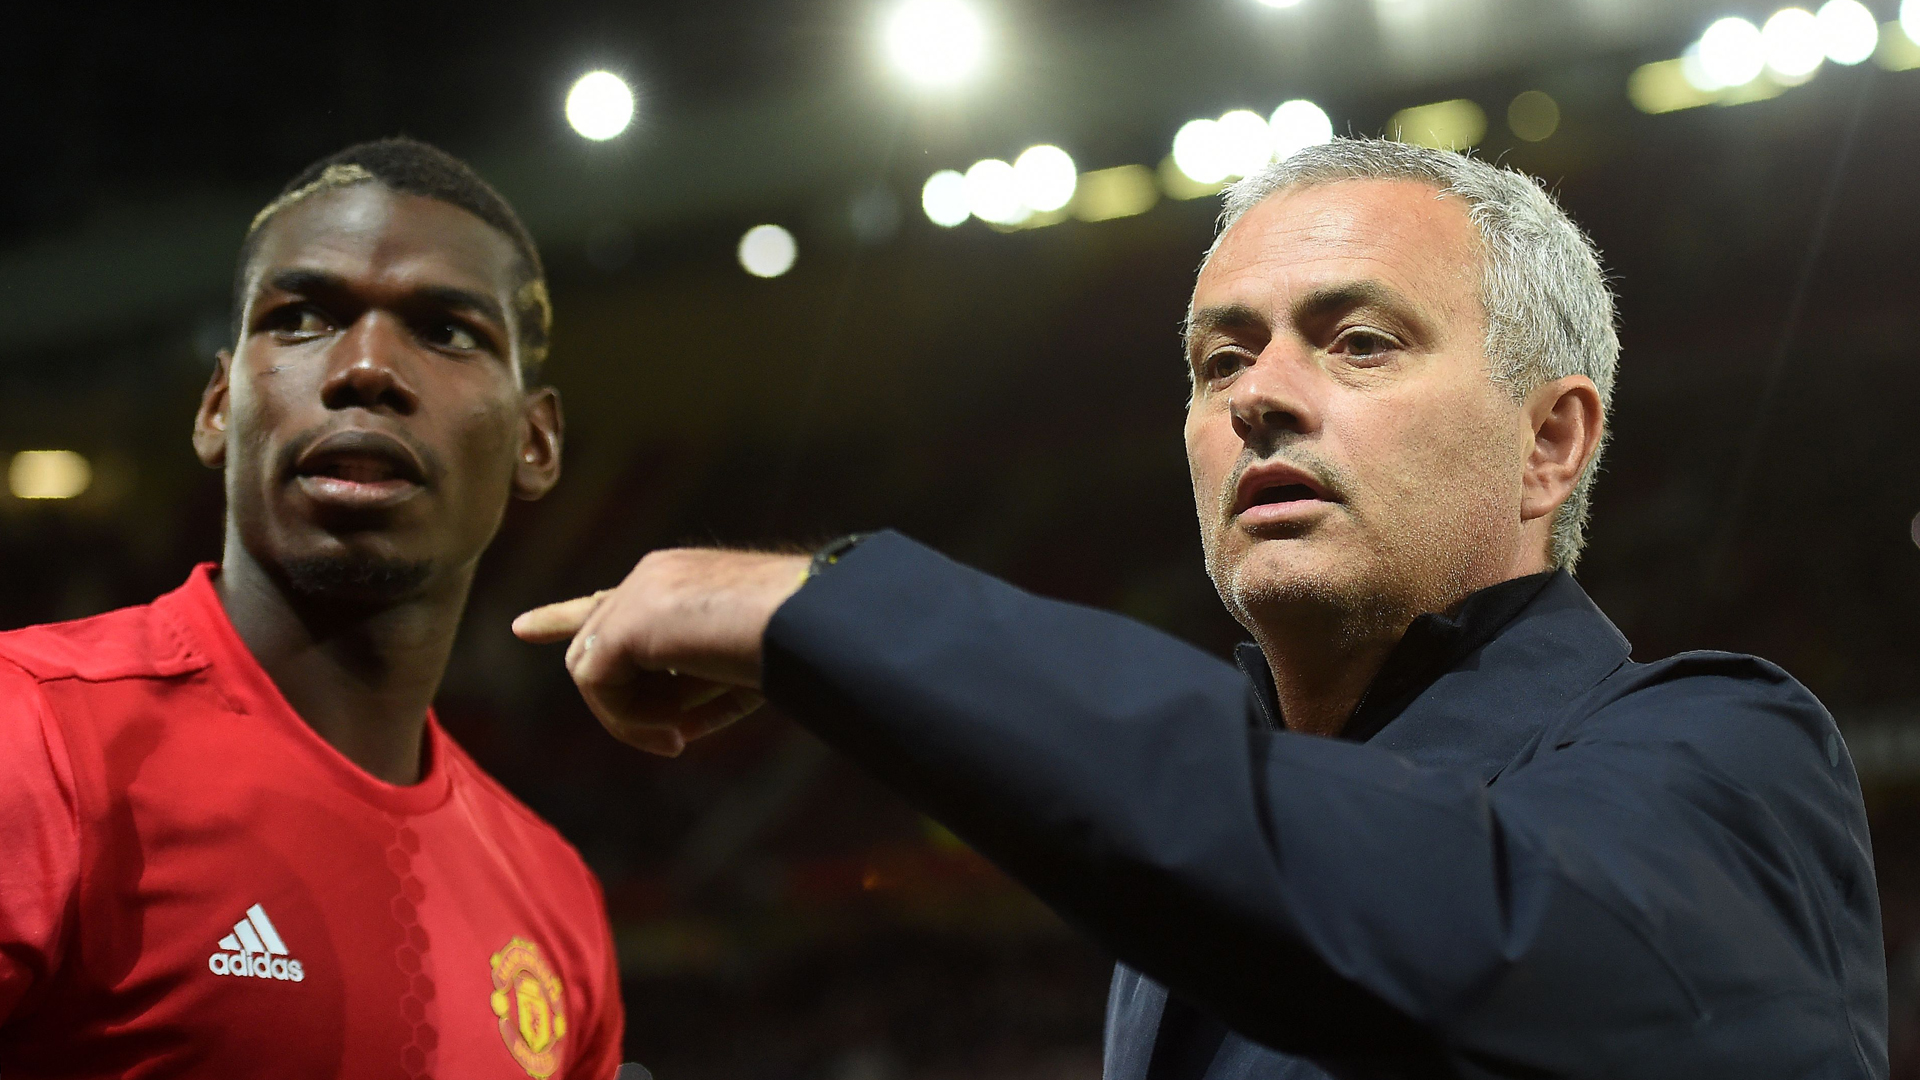 Odegbami: Between Man United, Mourinho and Pogba!